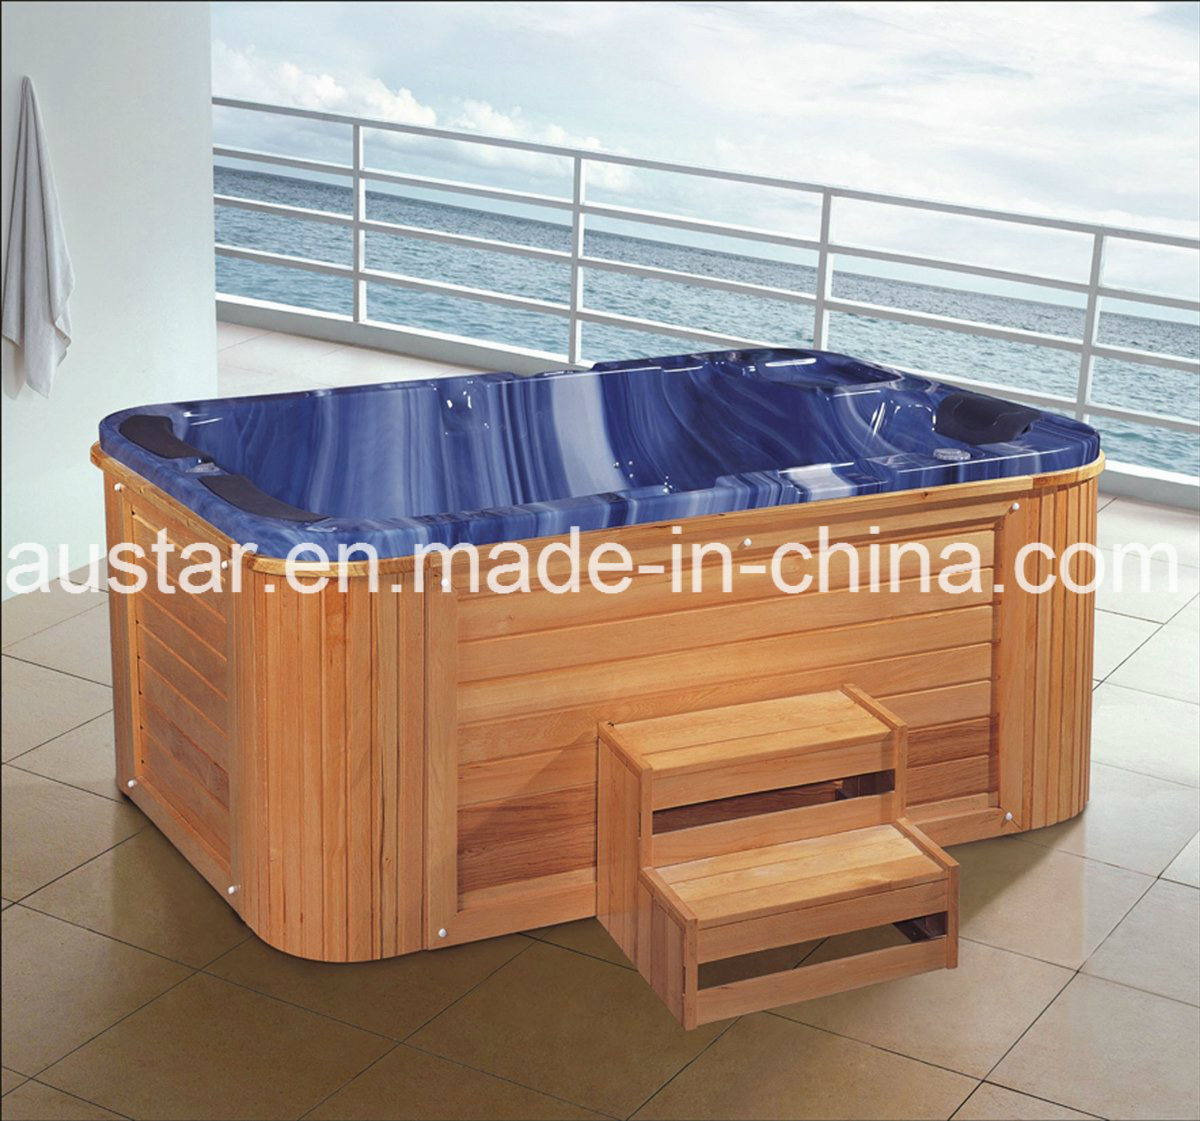 1900mm Free Standing Blue Outdoor SPA for 3 People (AT-1935)